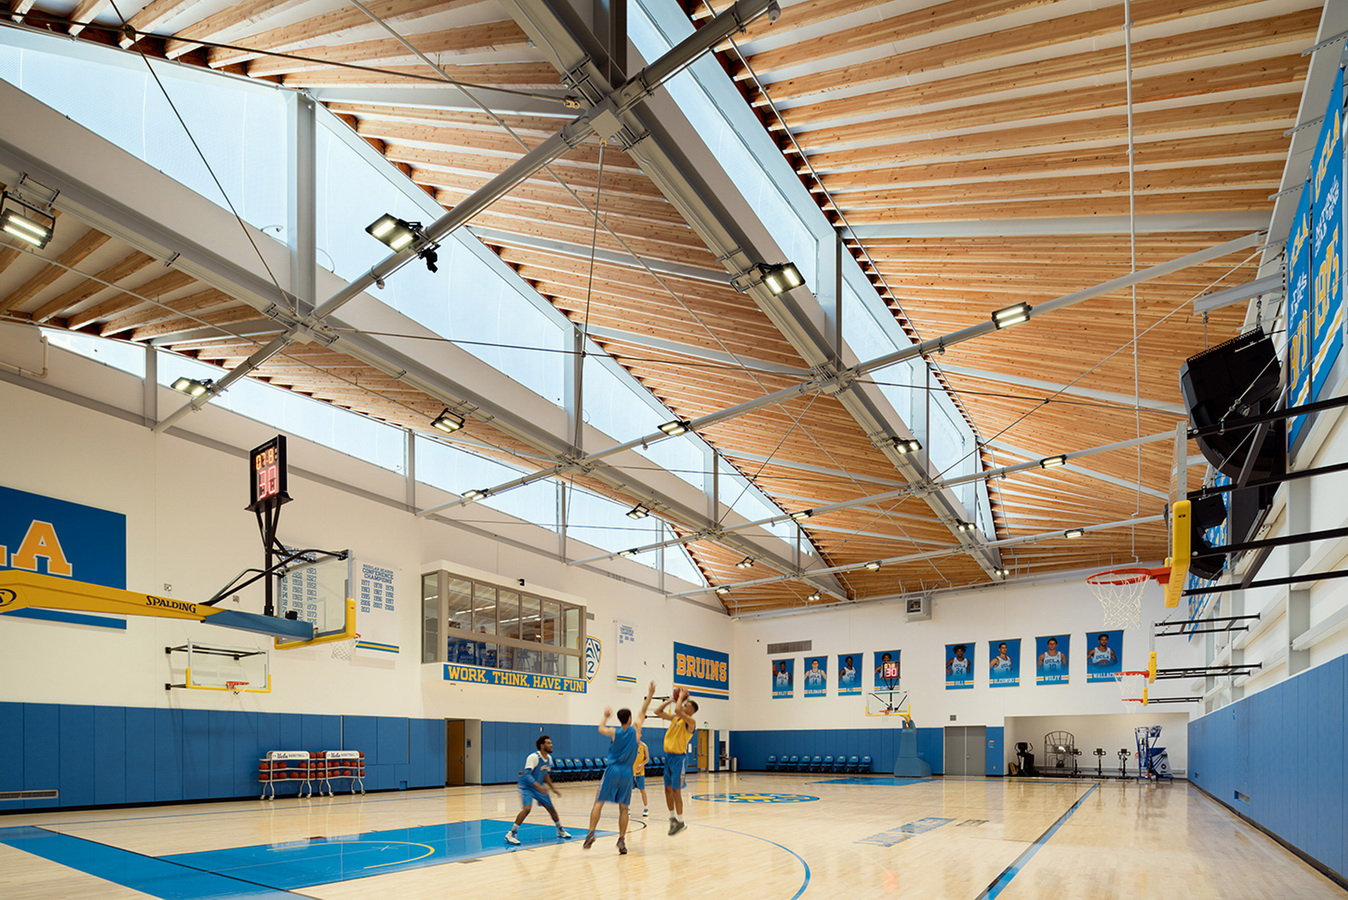 调整大小 ucla-basketball-facility-kevin-daly-architects-architecture-los-angeles-california-usa_dezeen_2364_col_19.jpg